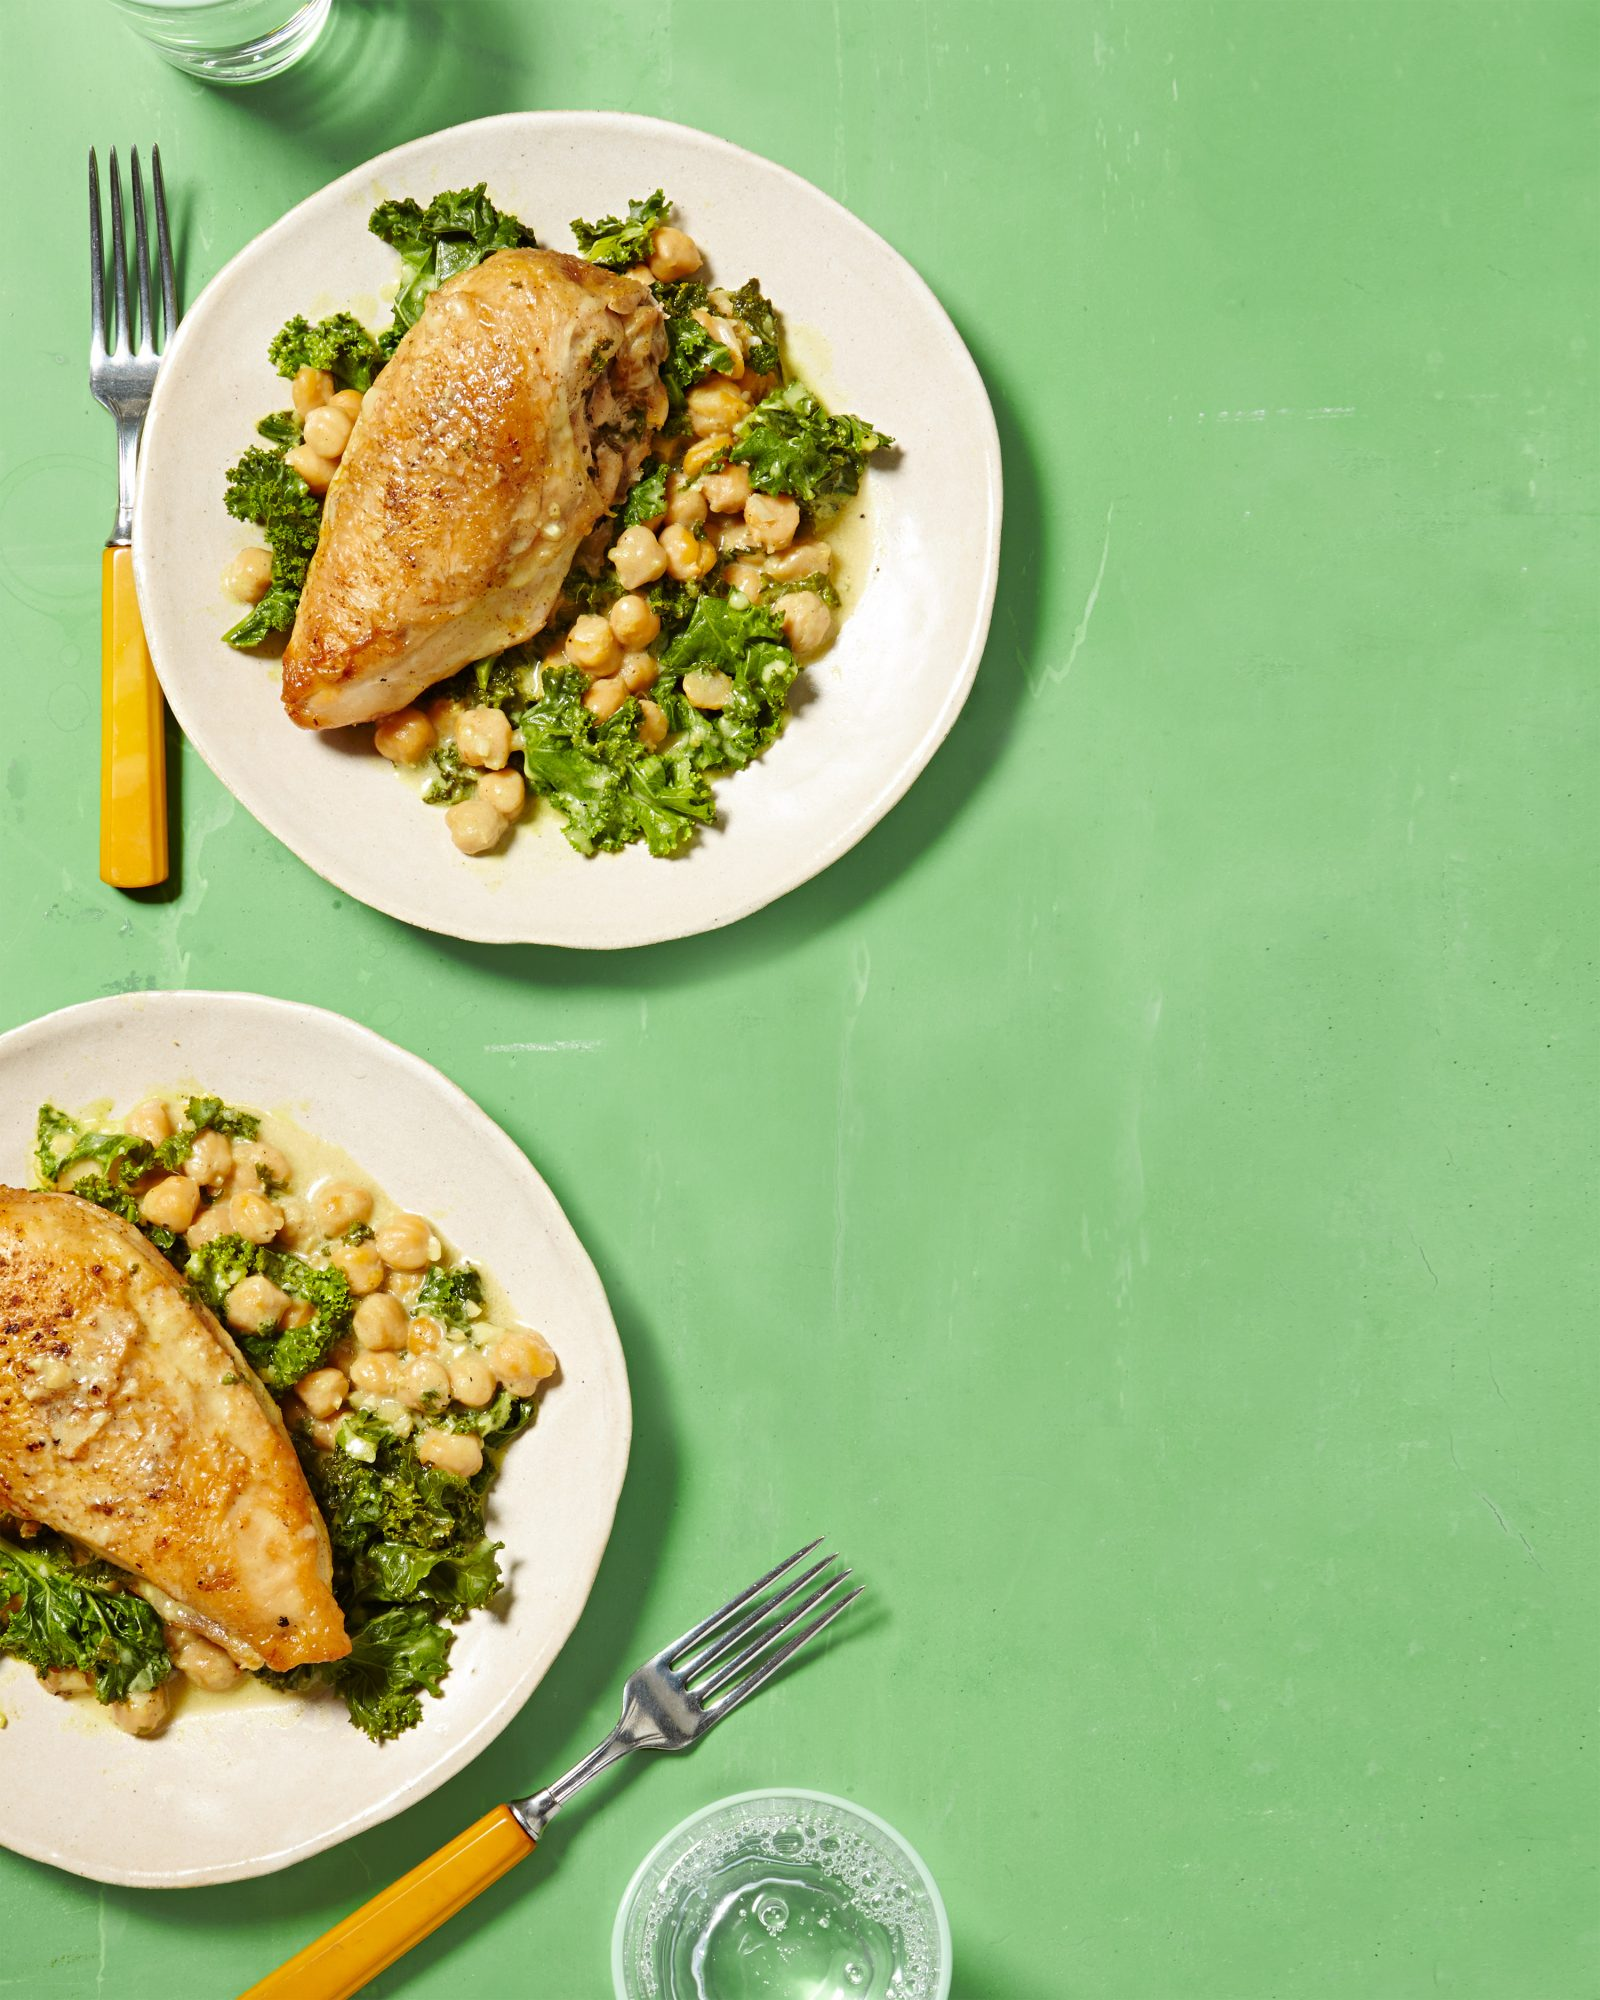 Curried Chicken Breasts with Chickpeas & Kale